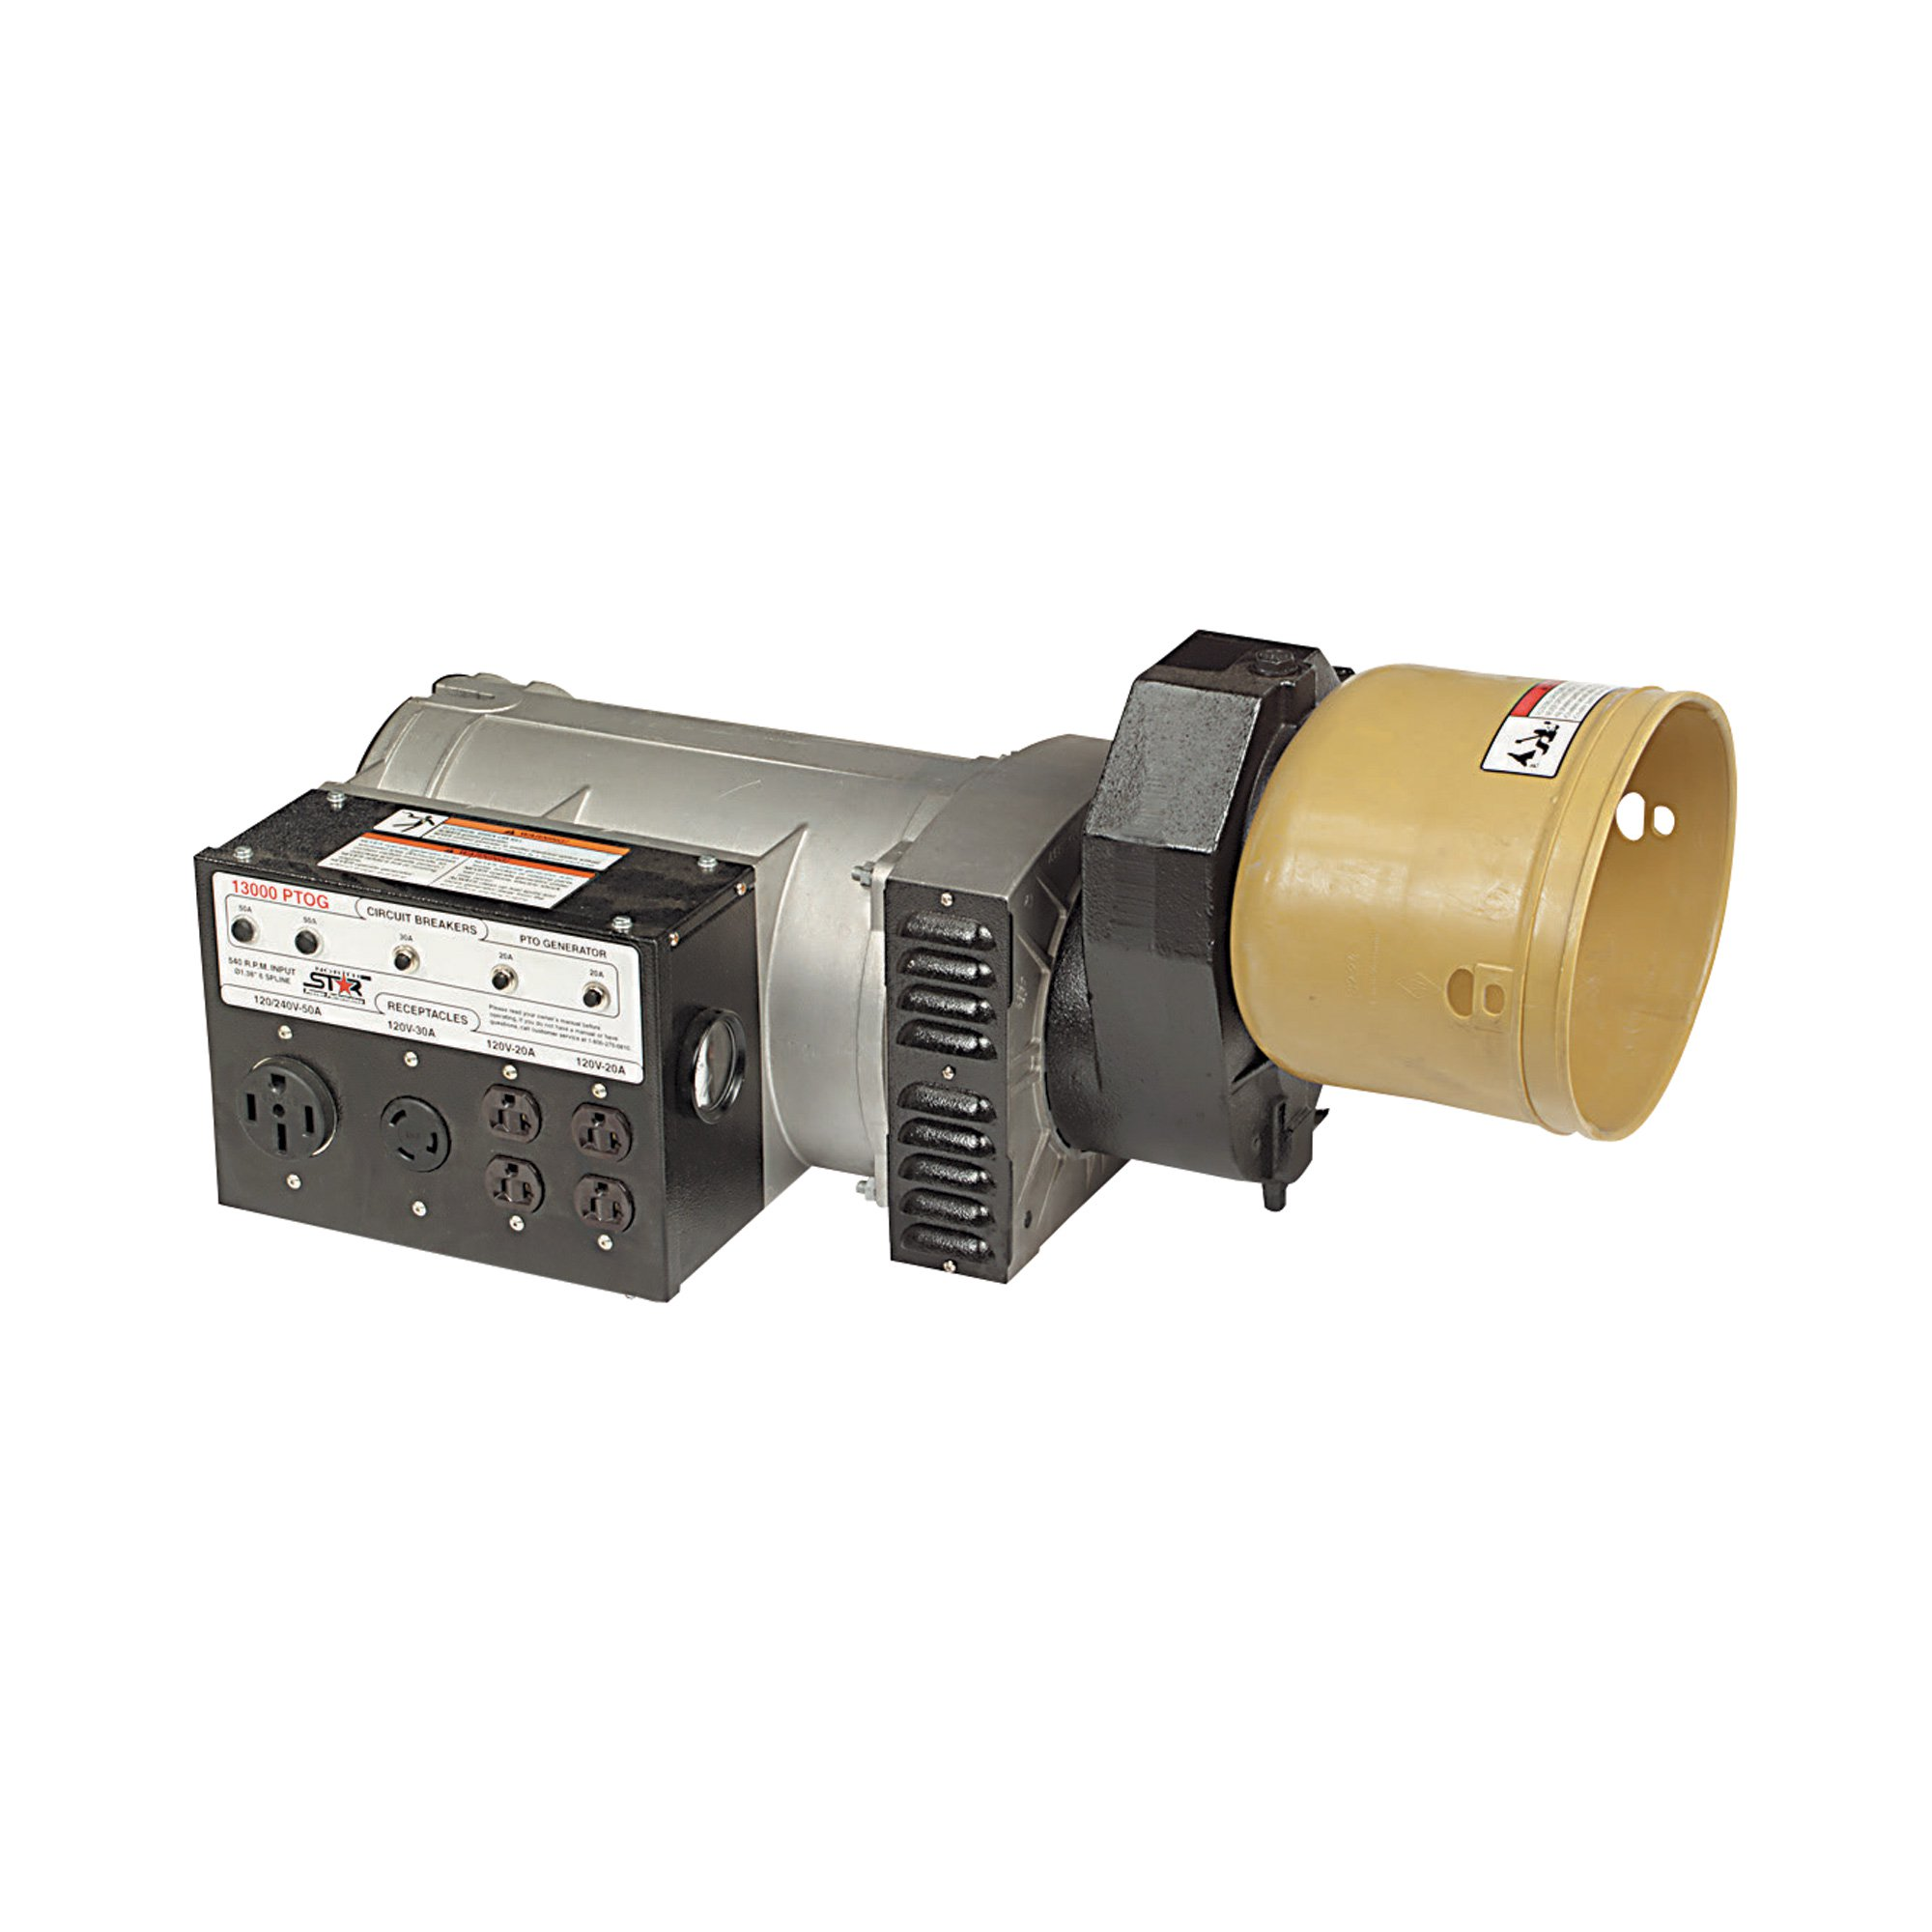 NorthStar 165929: PTO Generator - 3,000 Surge Watts, 12,000 Rated Watts, 24 HP Required